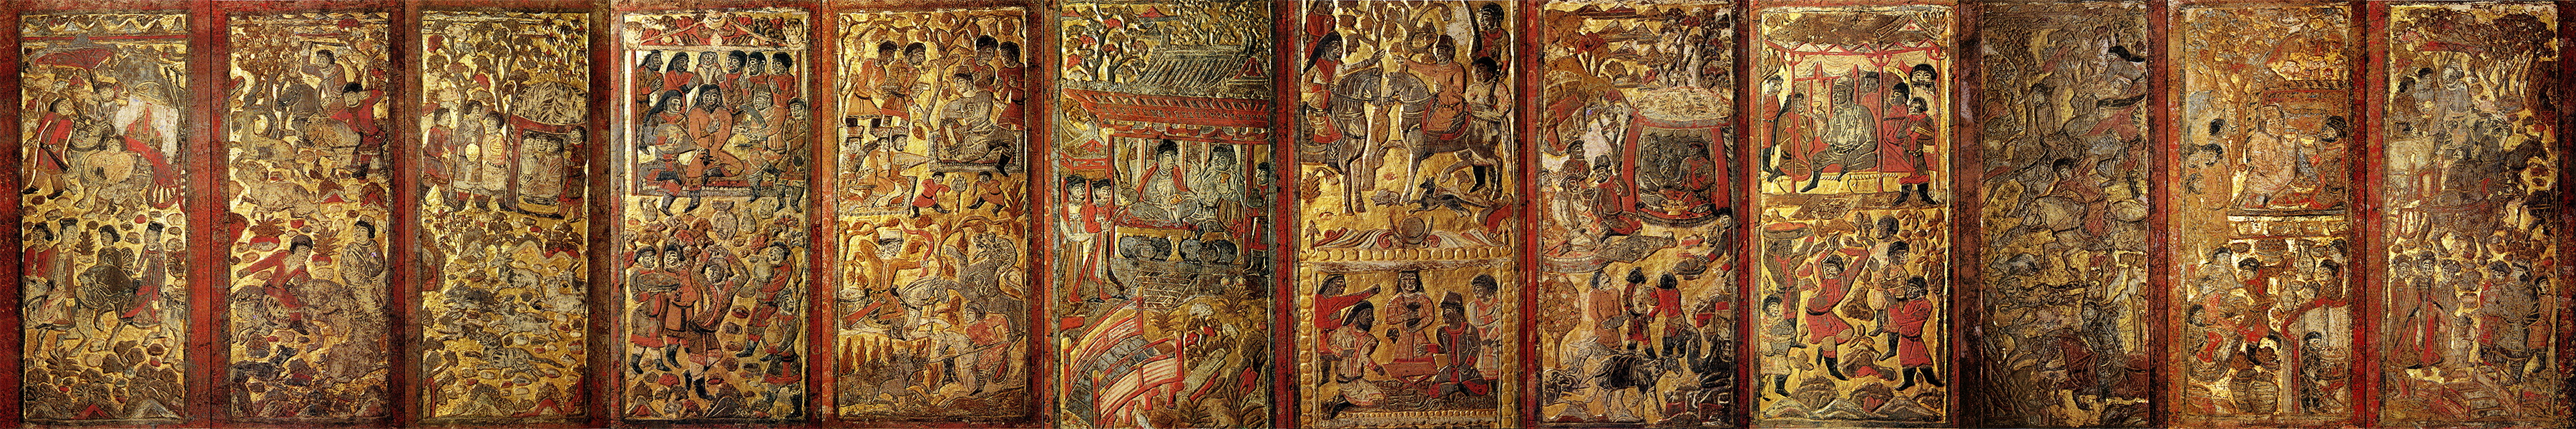 Overview of the scenes found on the funerary bed